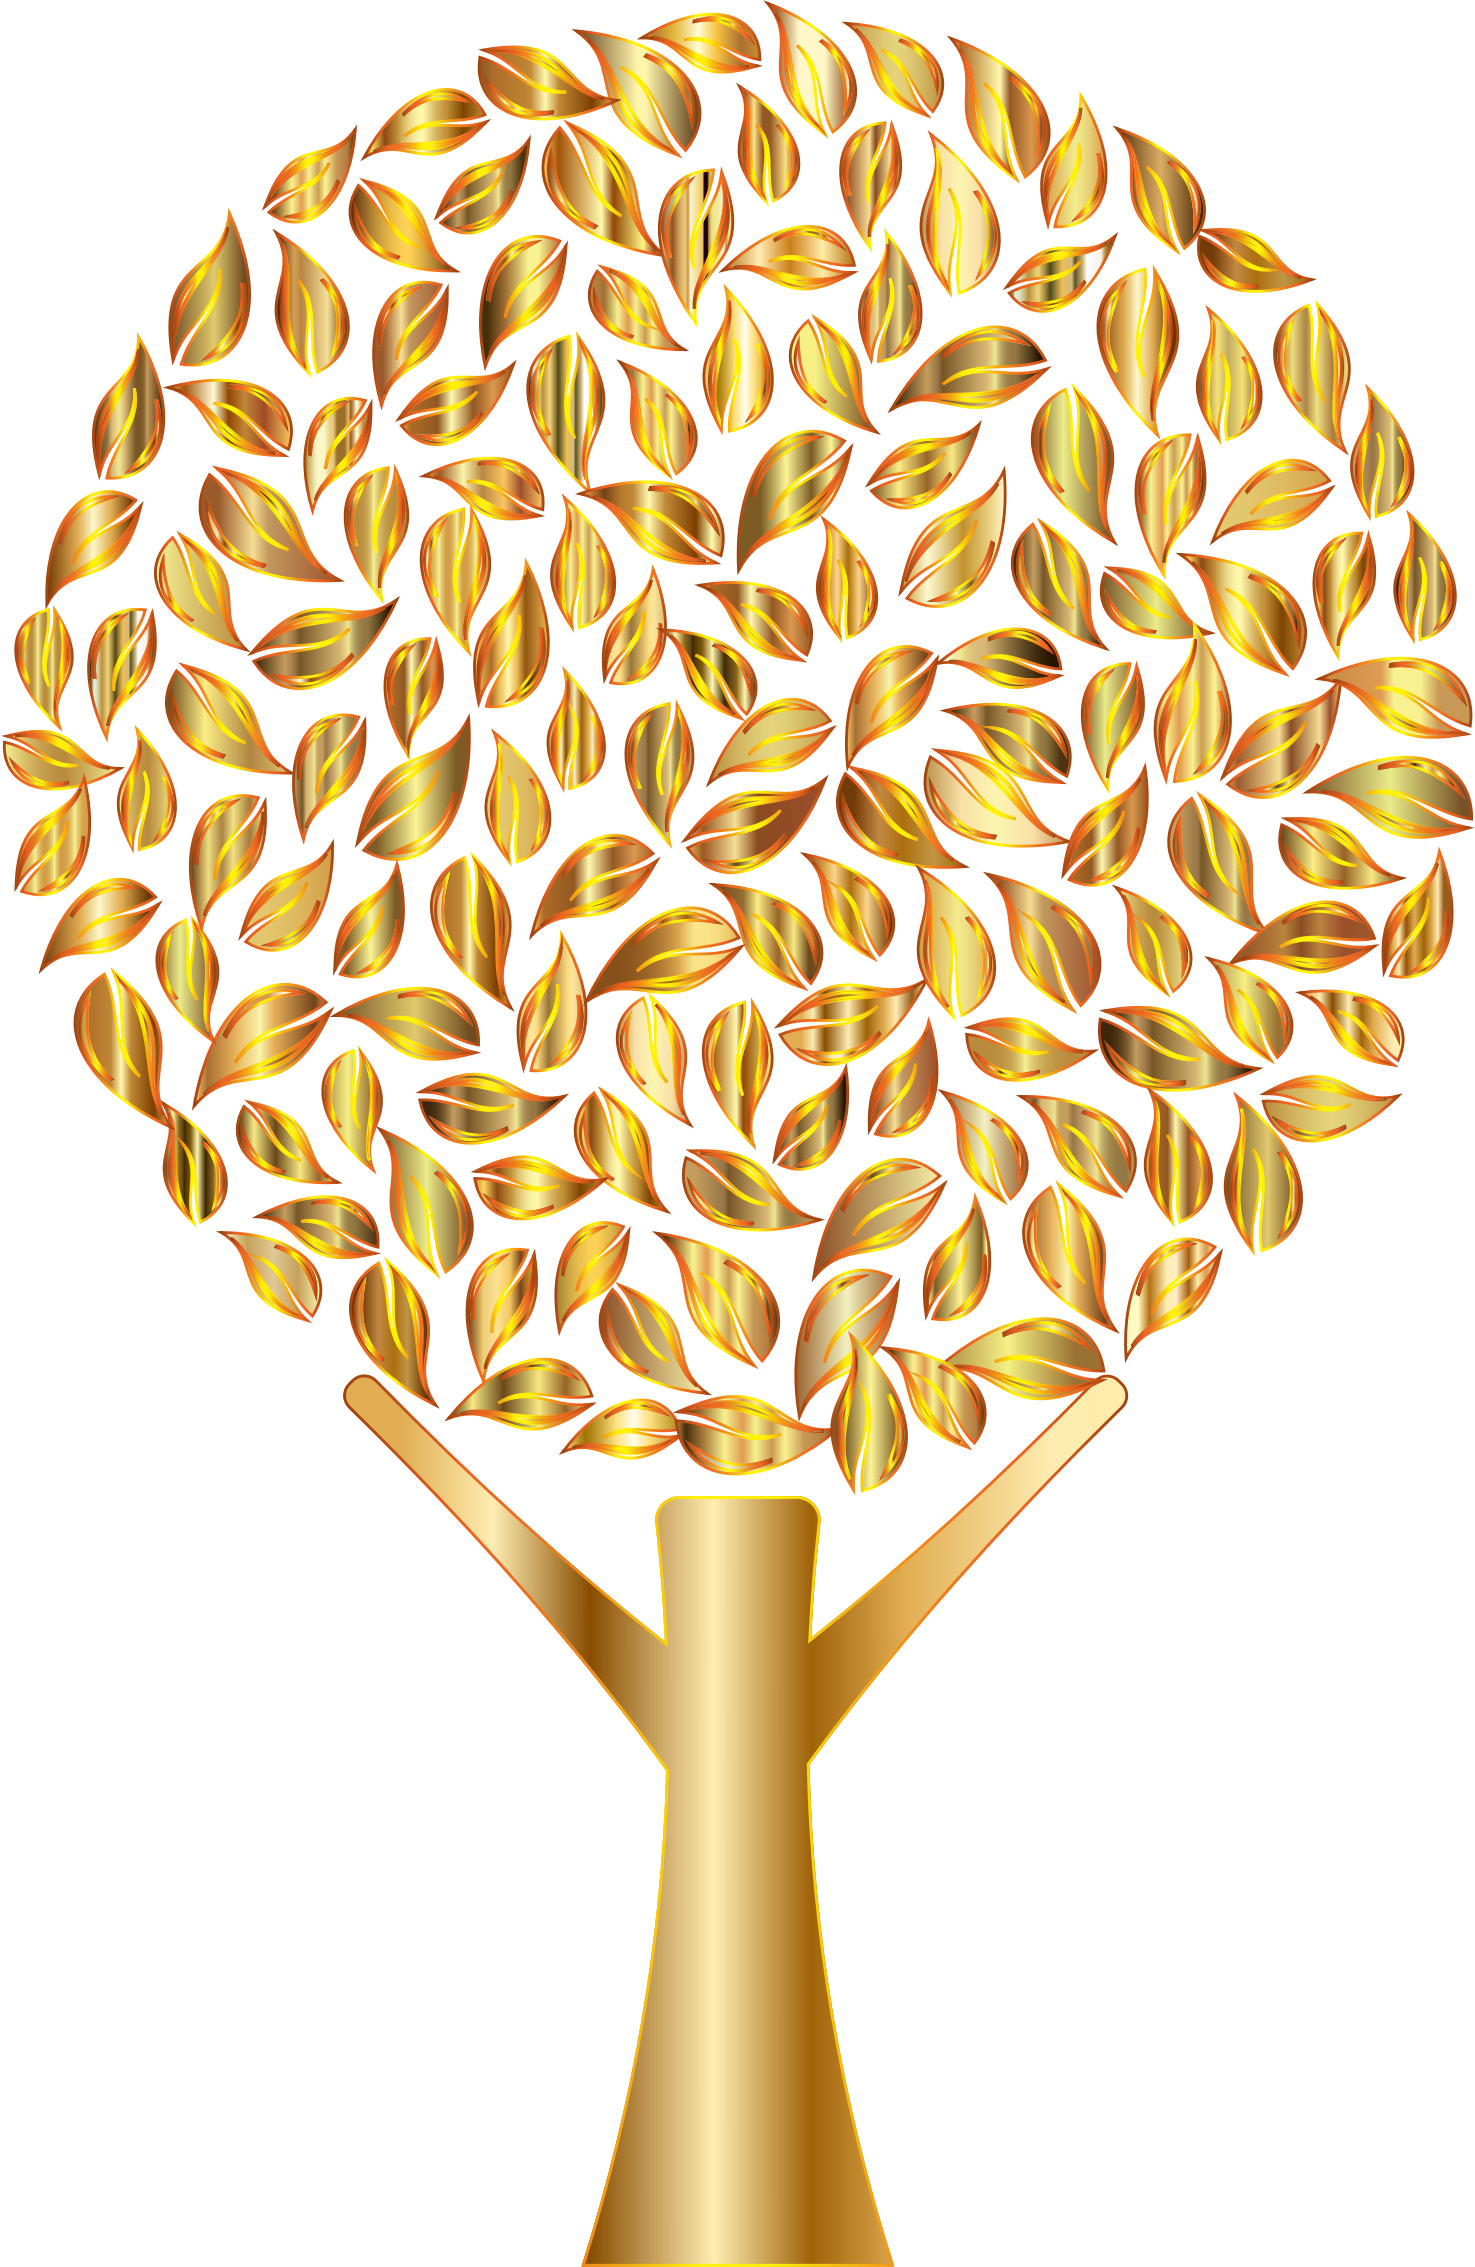 Number 2 clipart abstract. Prismatic tree variation no